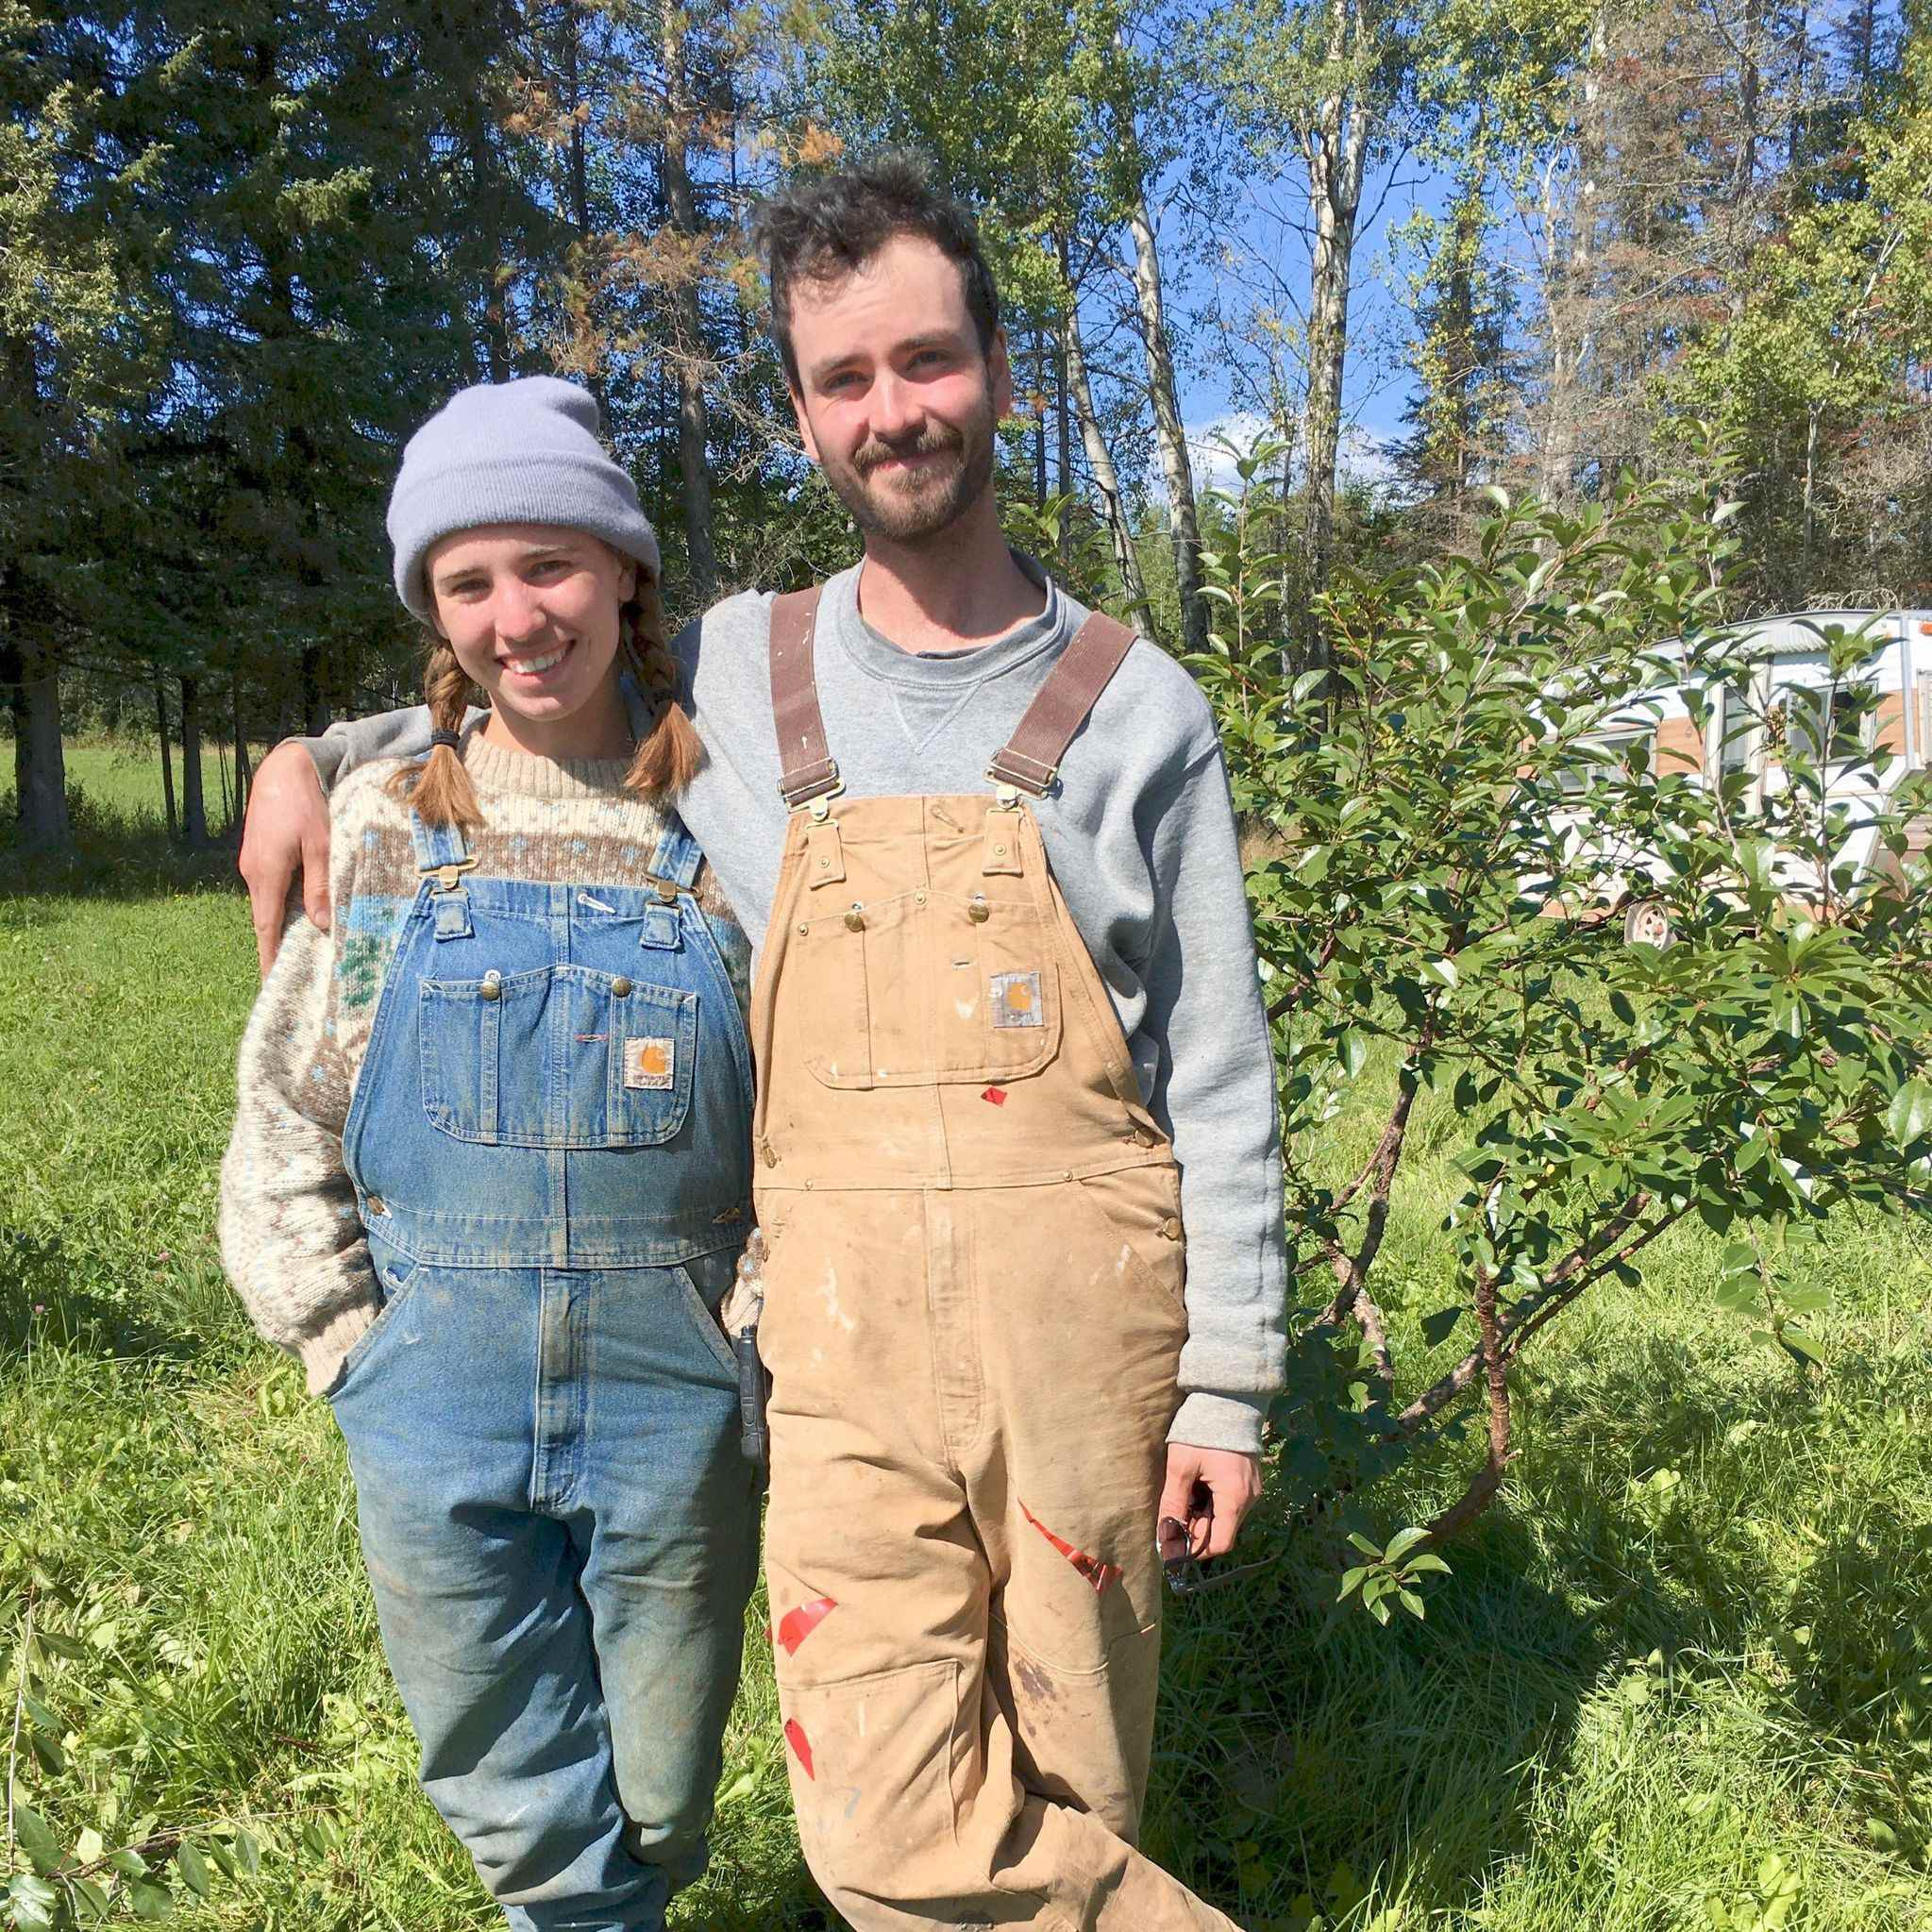 Bethany's Garden (The New Growers)